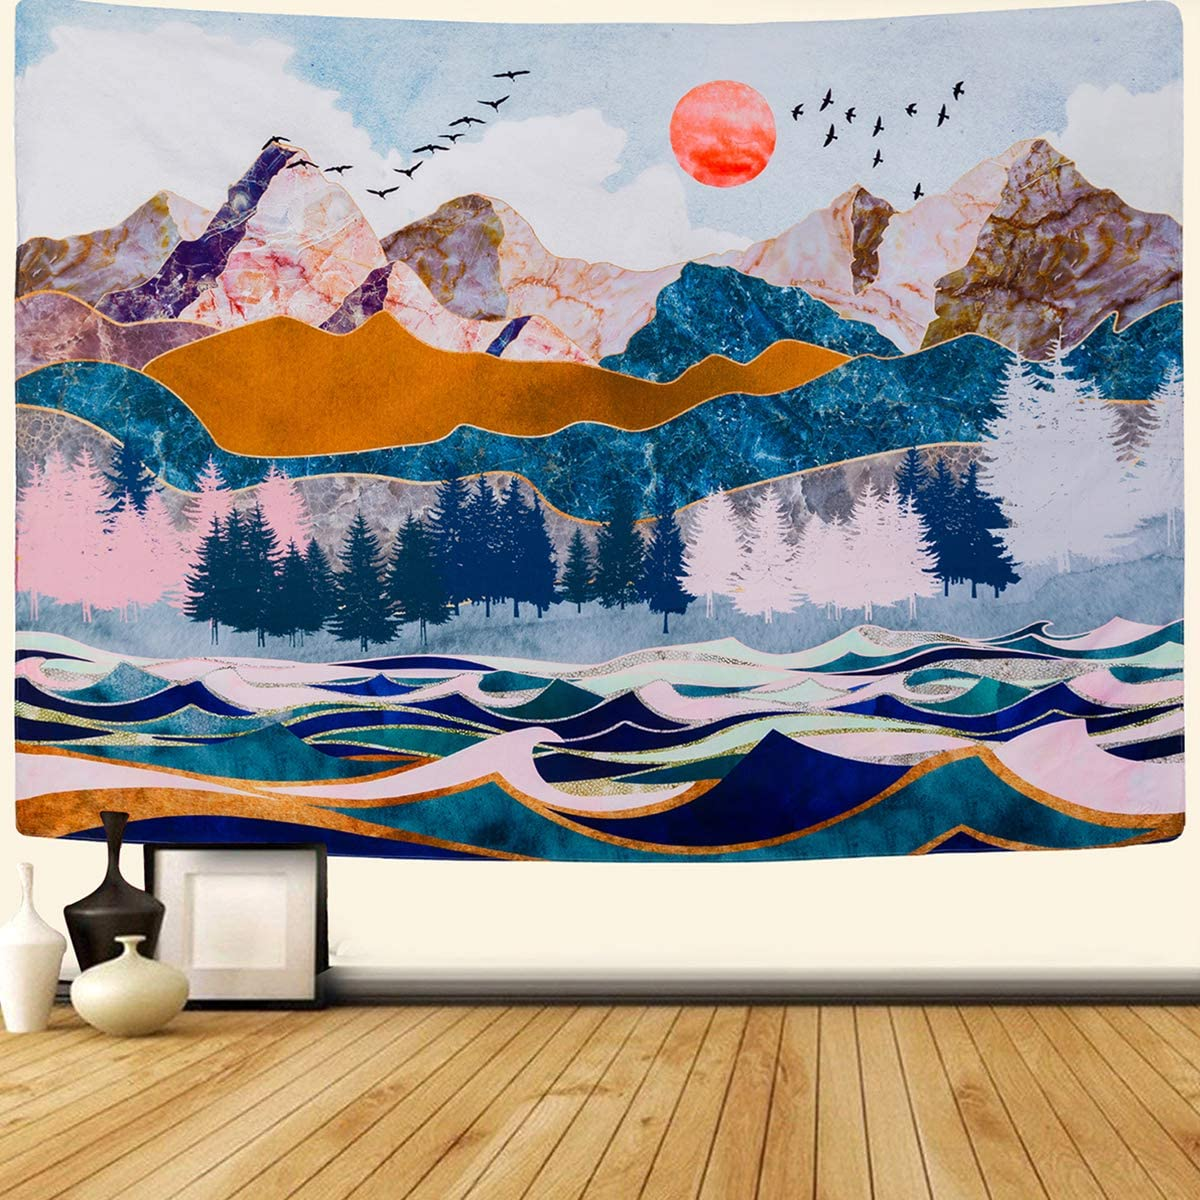 SENYYI Mountain and Sunset Tapestry Wall Hanging Forest Trees Tapestry Wave Art Tapestry Nature Landscape Home Decor for Room 70.9 x 92.5 inches